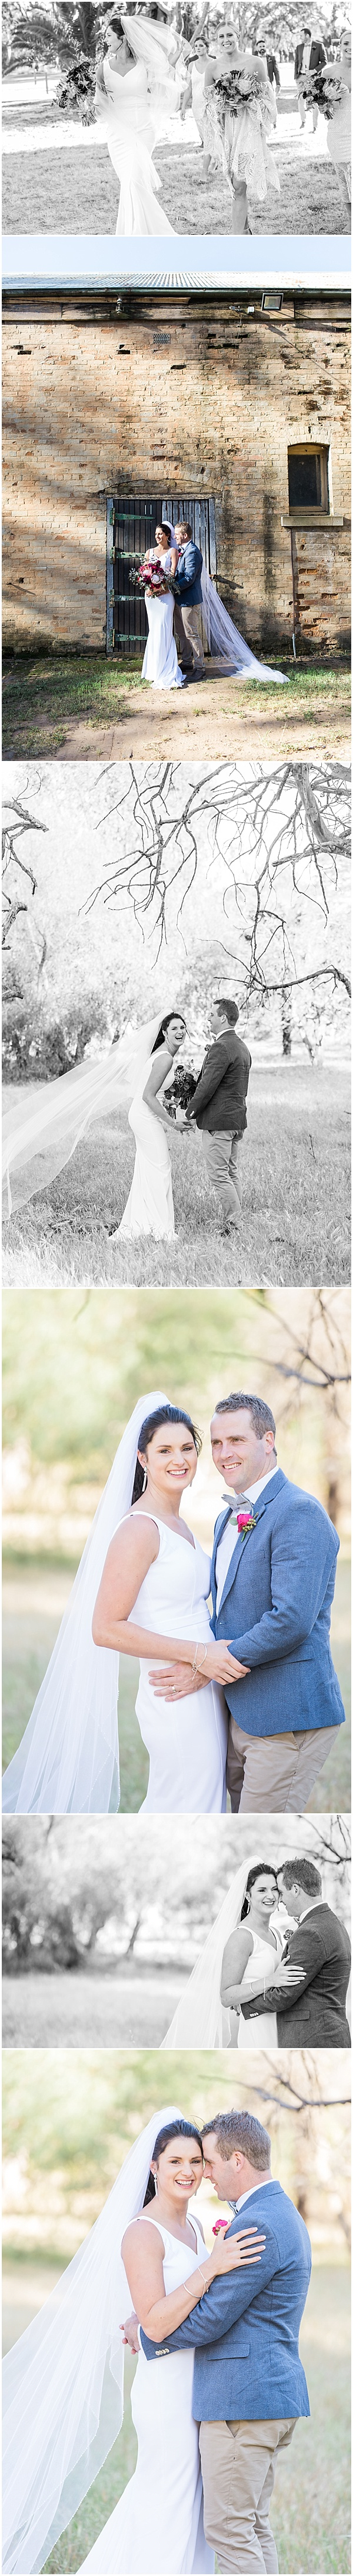 Echuca Moama Wedding Photography_0014